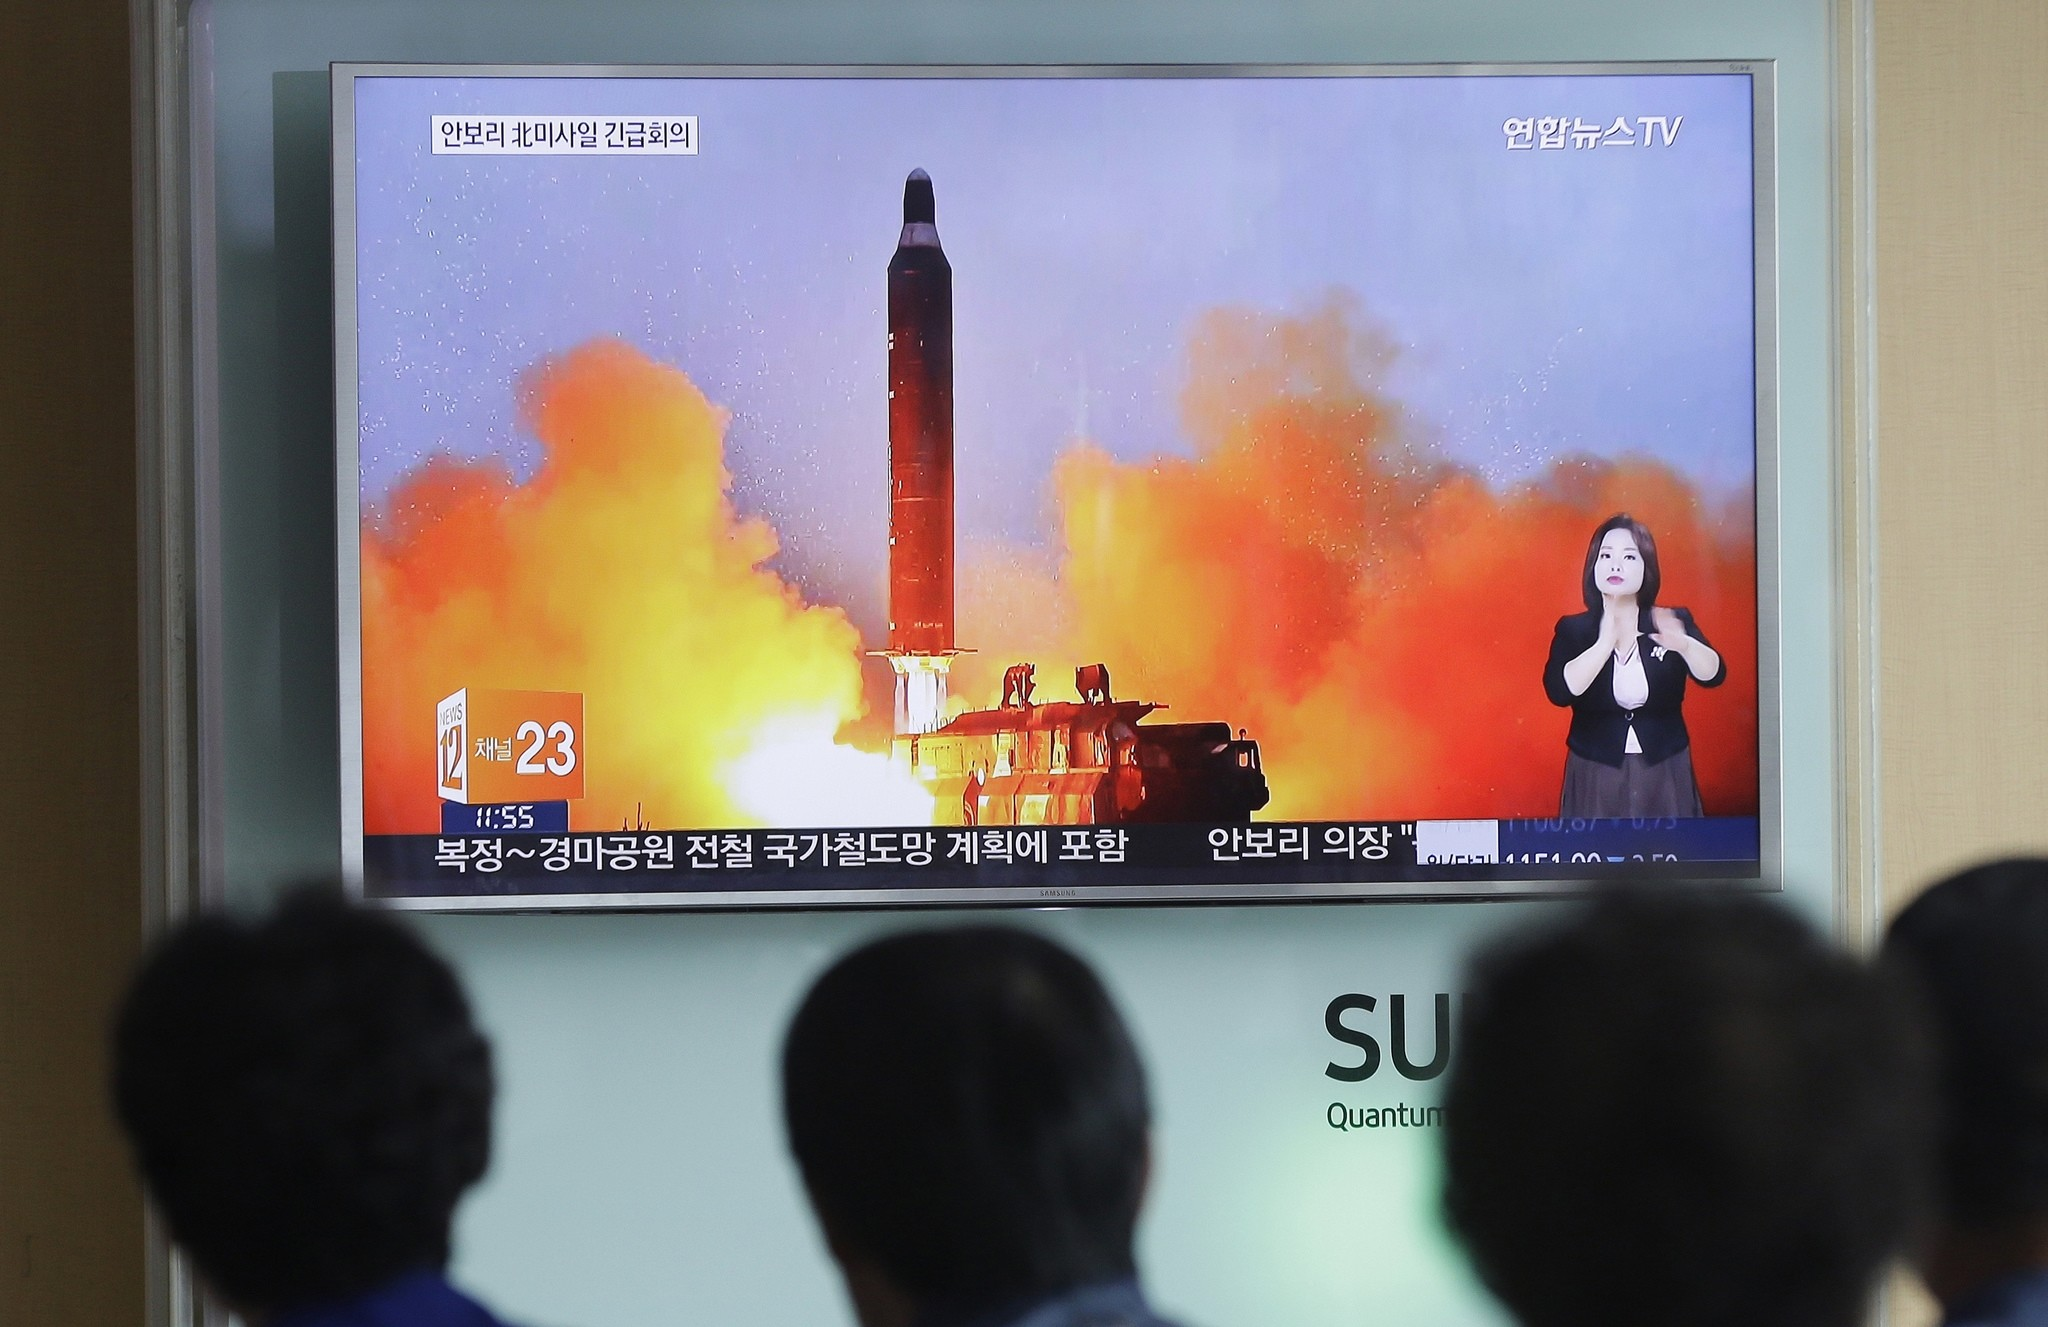 In this June 23, 2016, file photo, people watch a TV airing an image of North Korea's ballistic missile launch published in North Korea's Rodong Sinmun newspaper. (AP Photo)